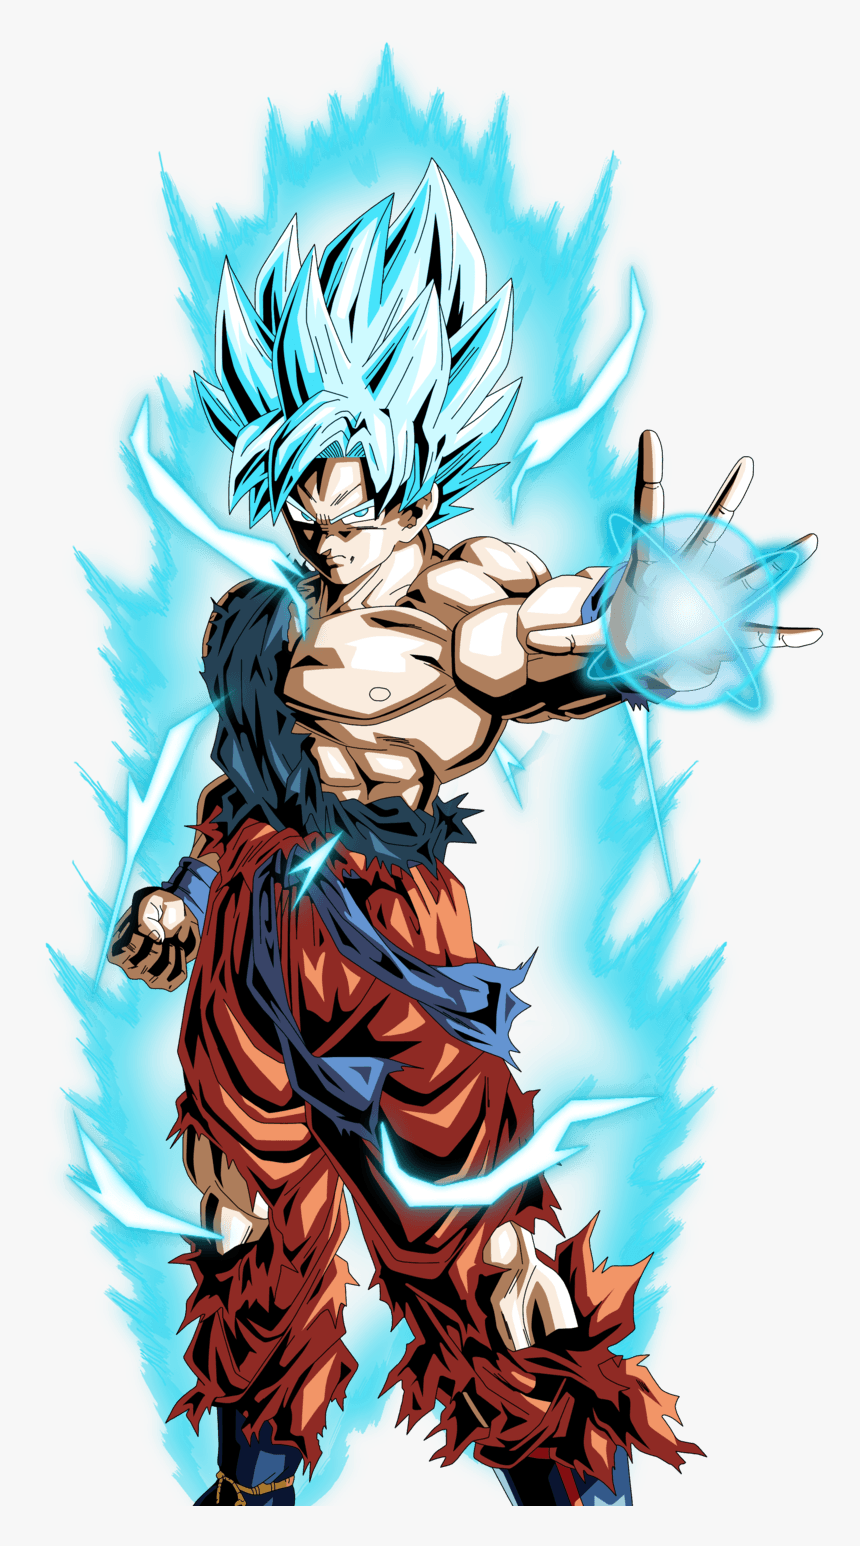 Super Saiyan God Goku Wallpapers Son Goku Ssj Blue Hd Png Download Kindpng